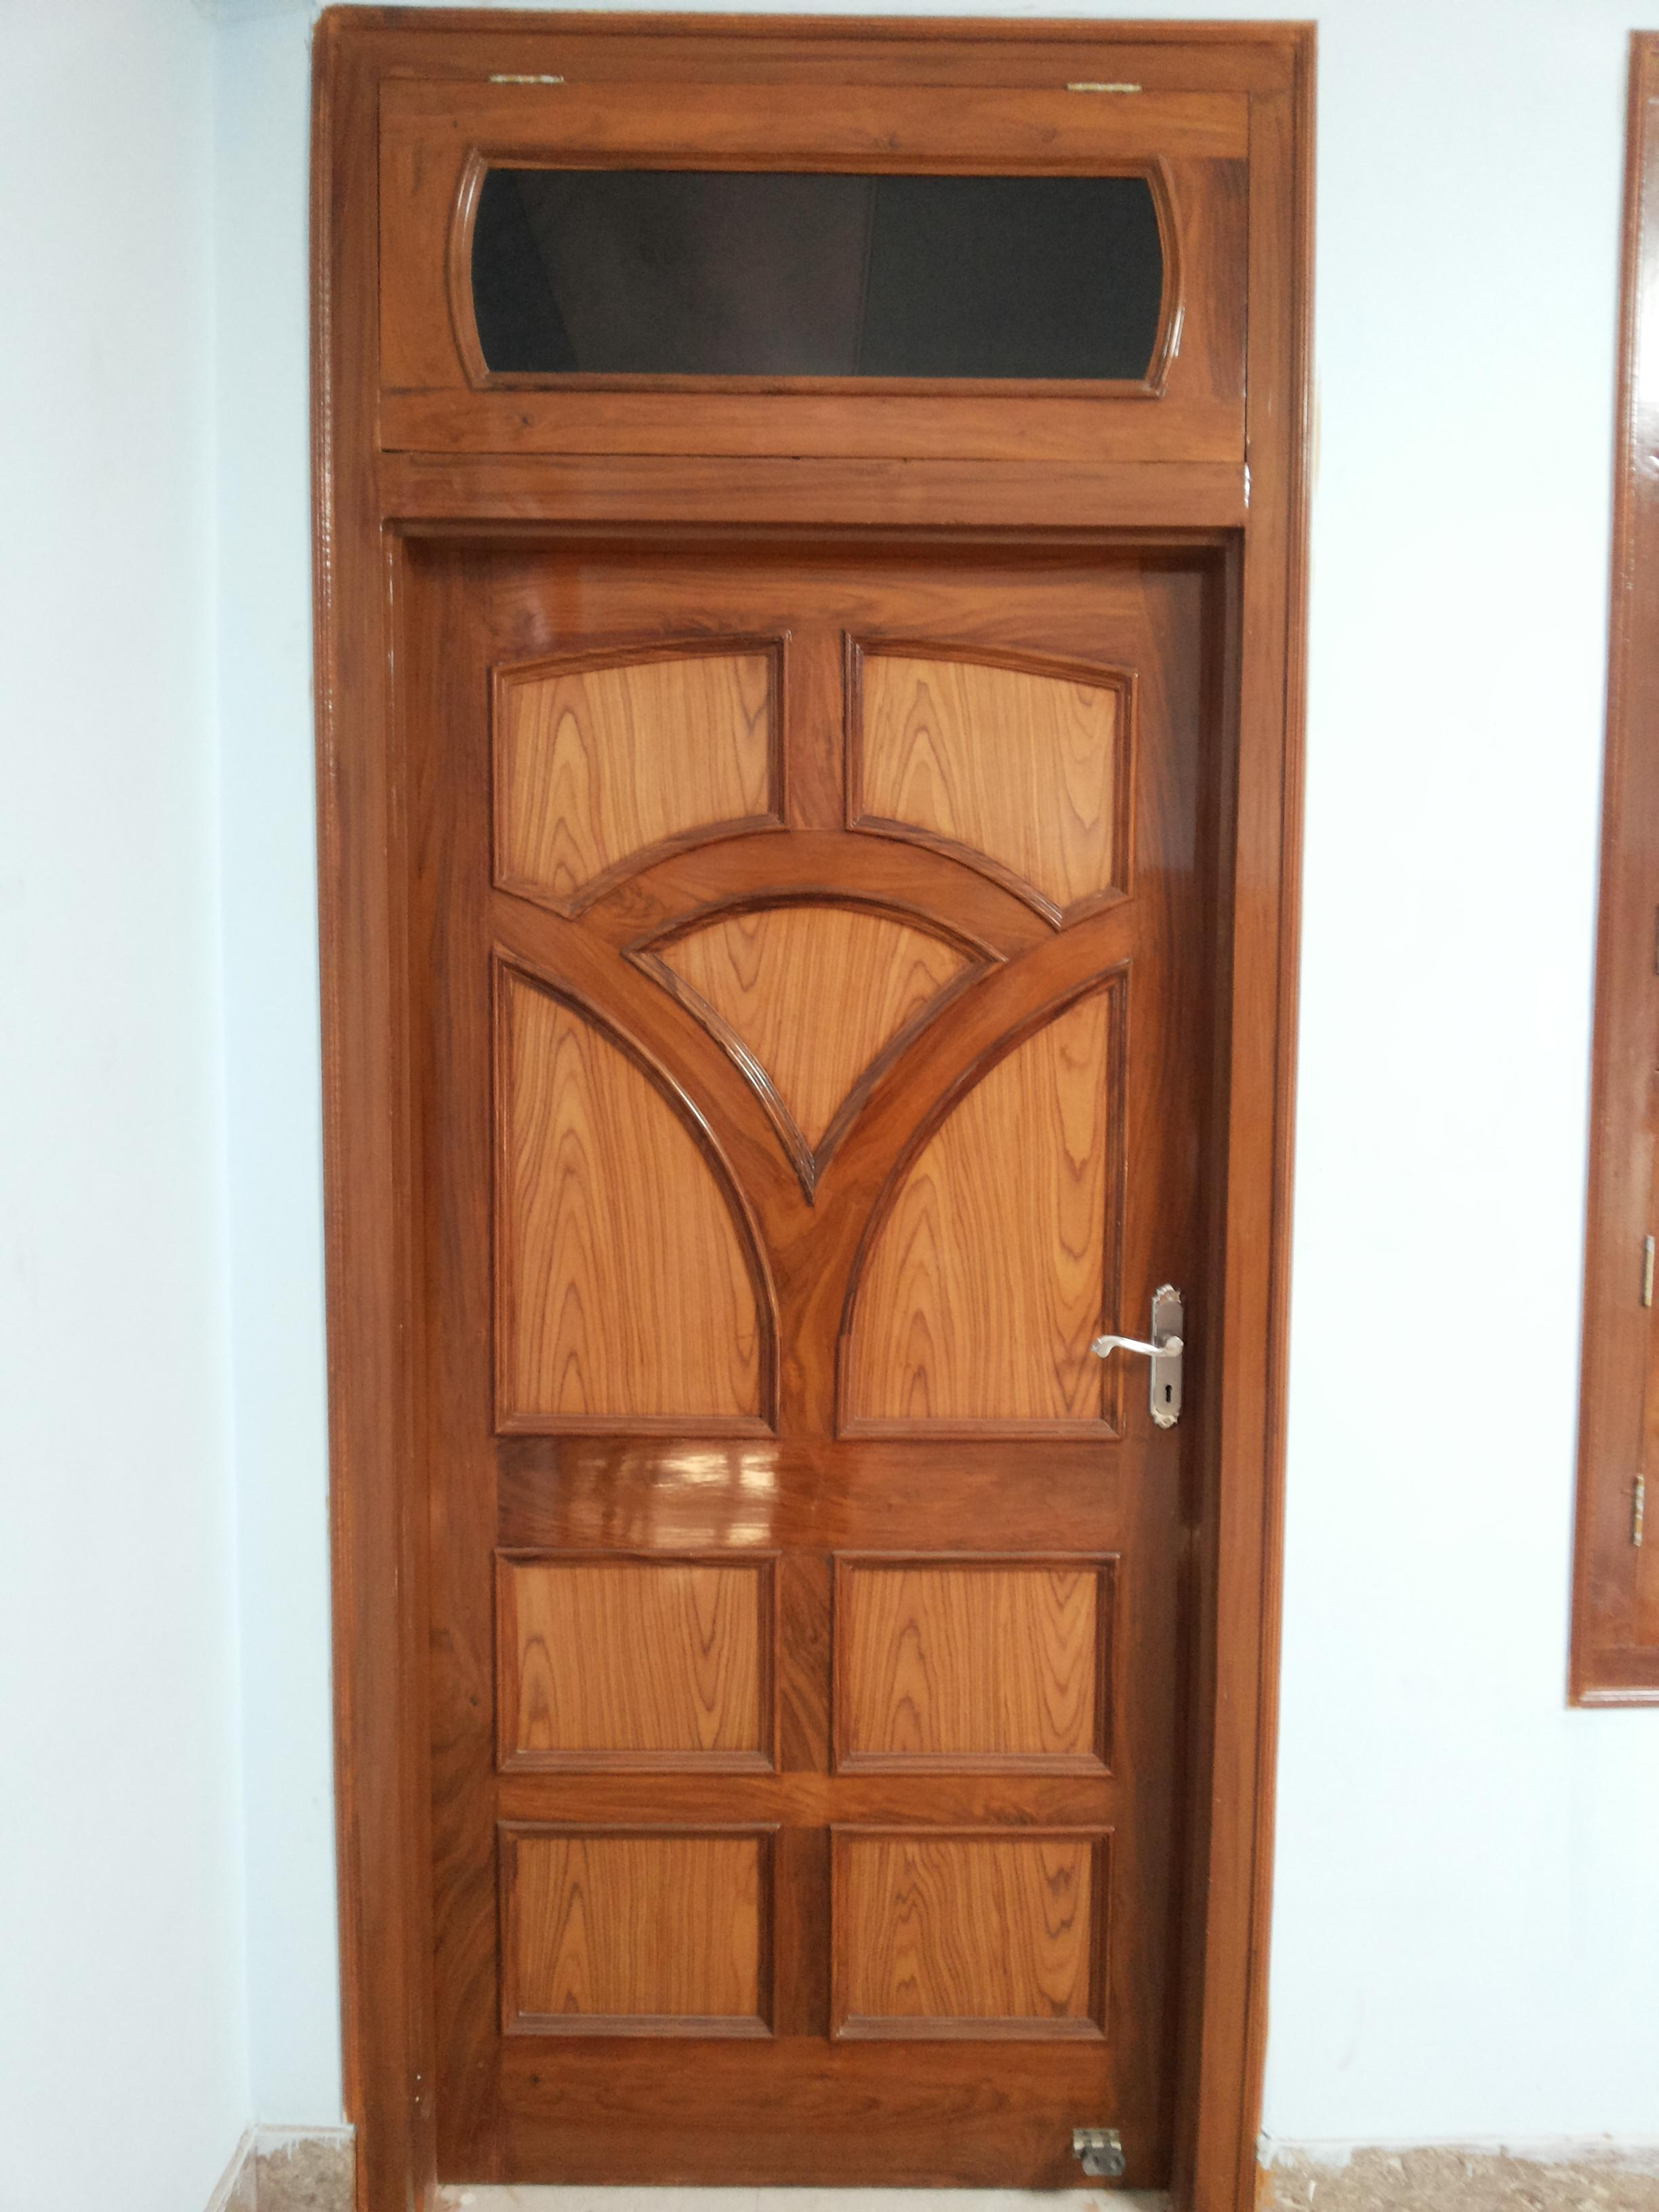 Doors Design: Single Panel Interior Wood Door Design